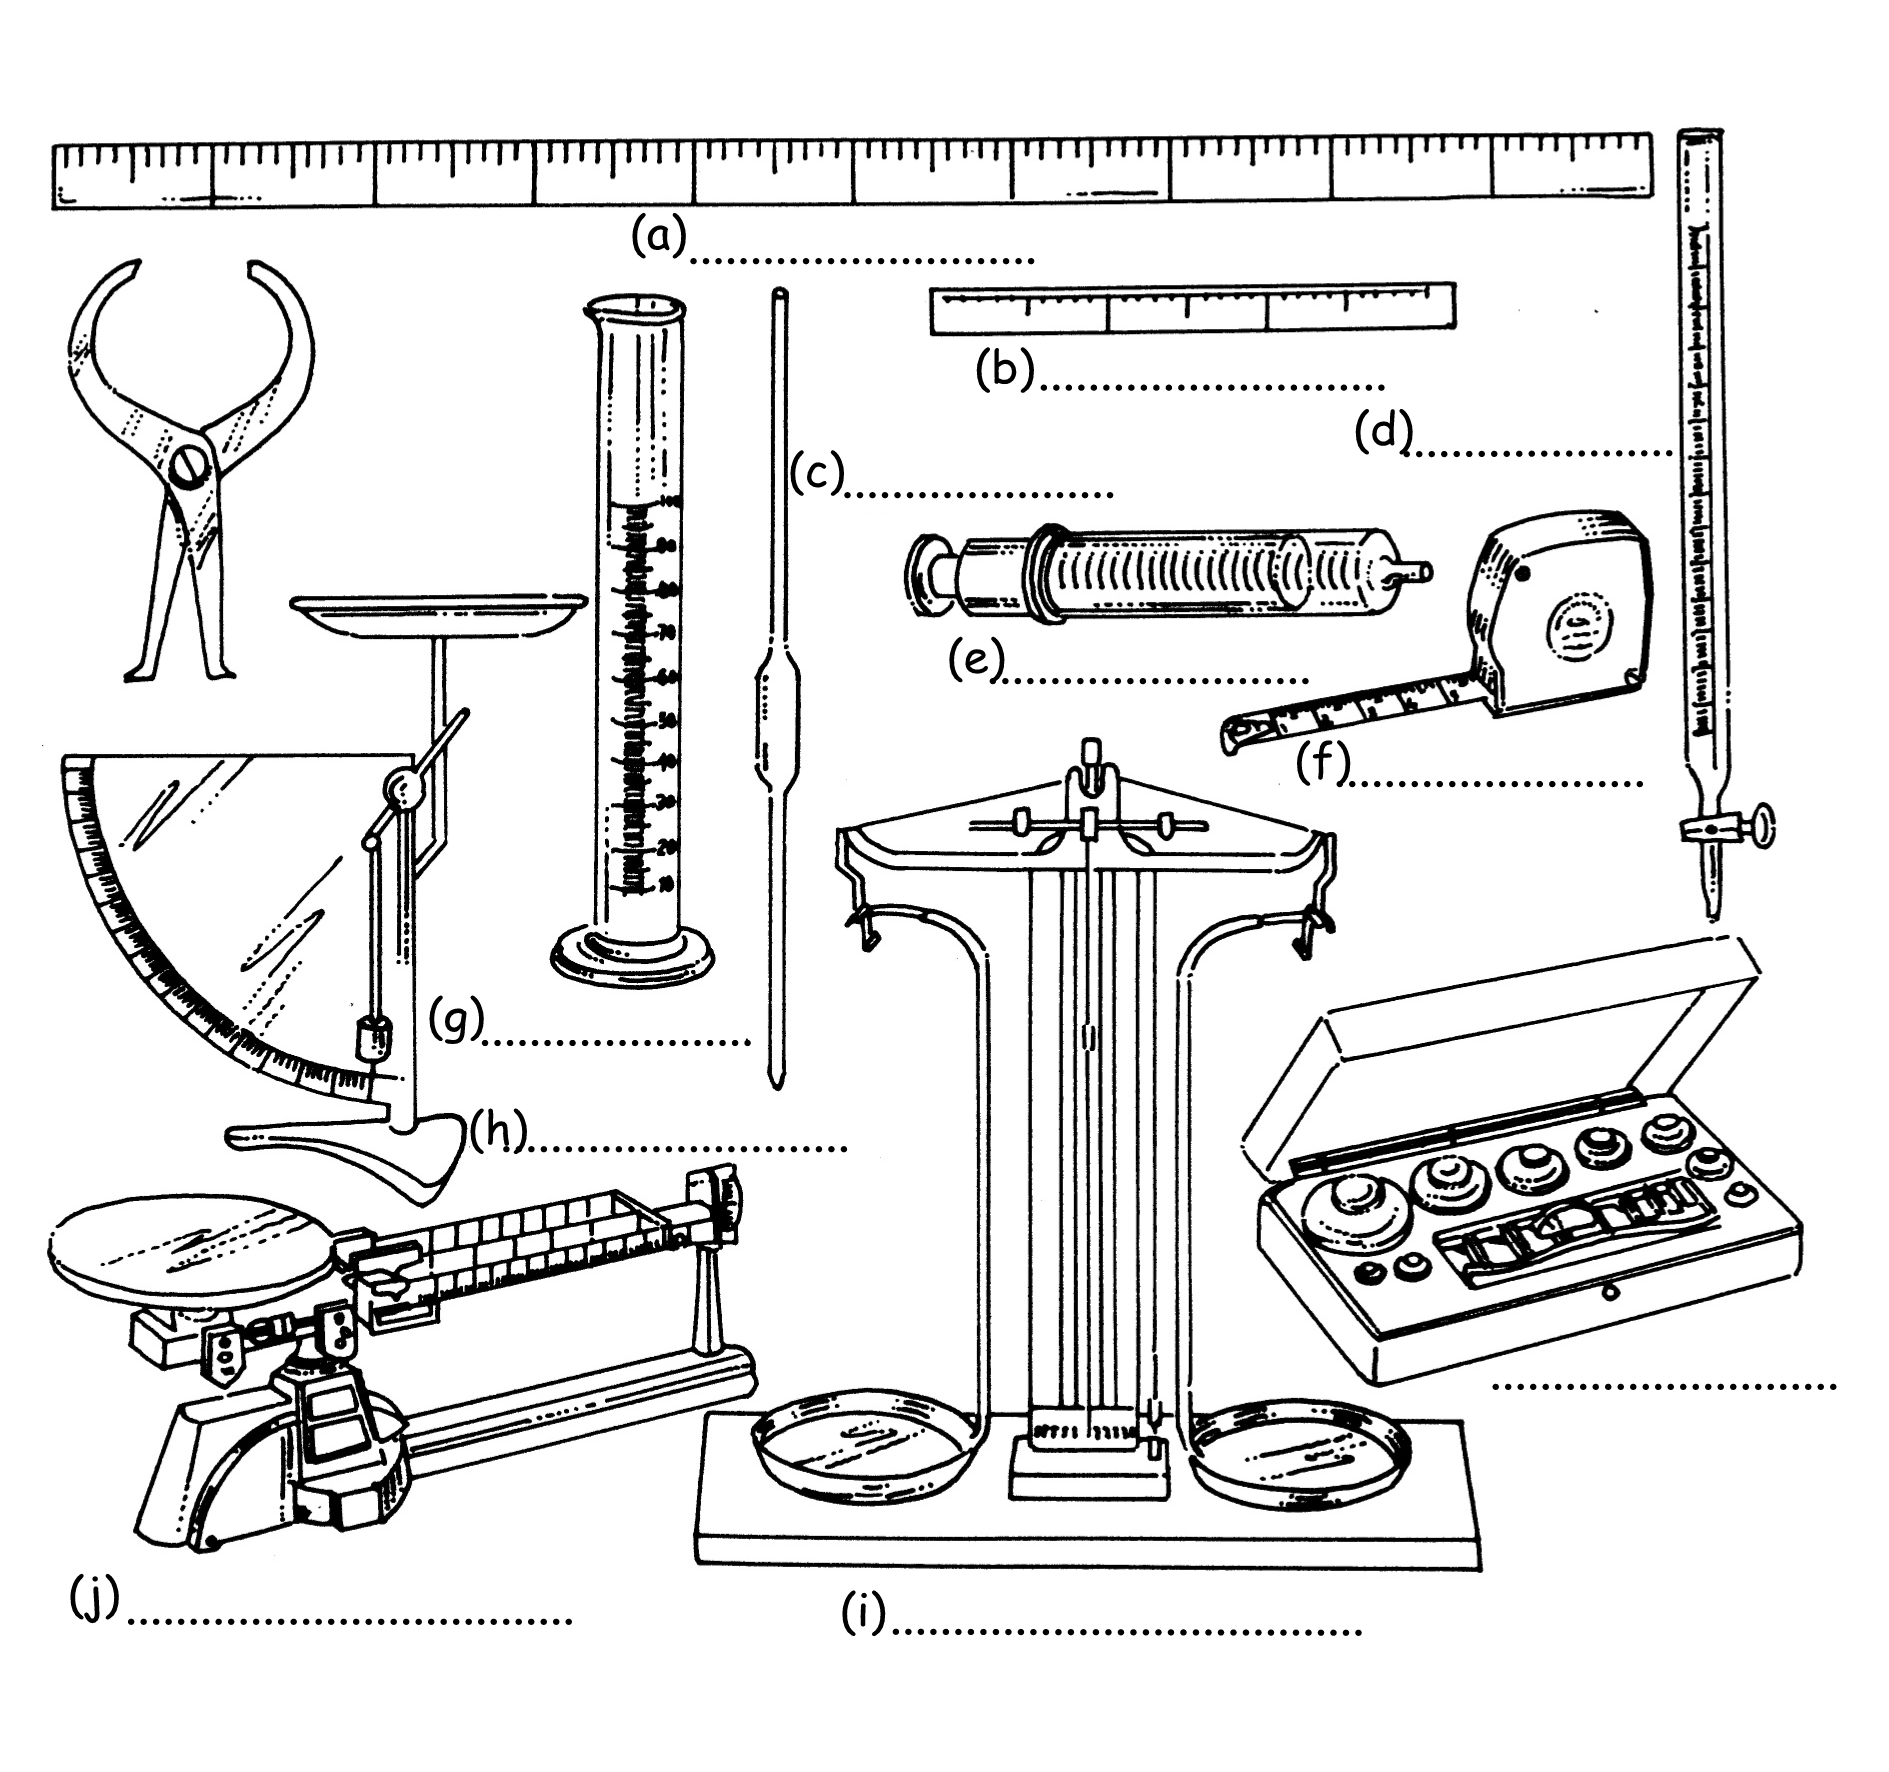 A Measuring Instrument